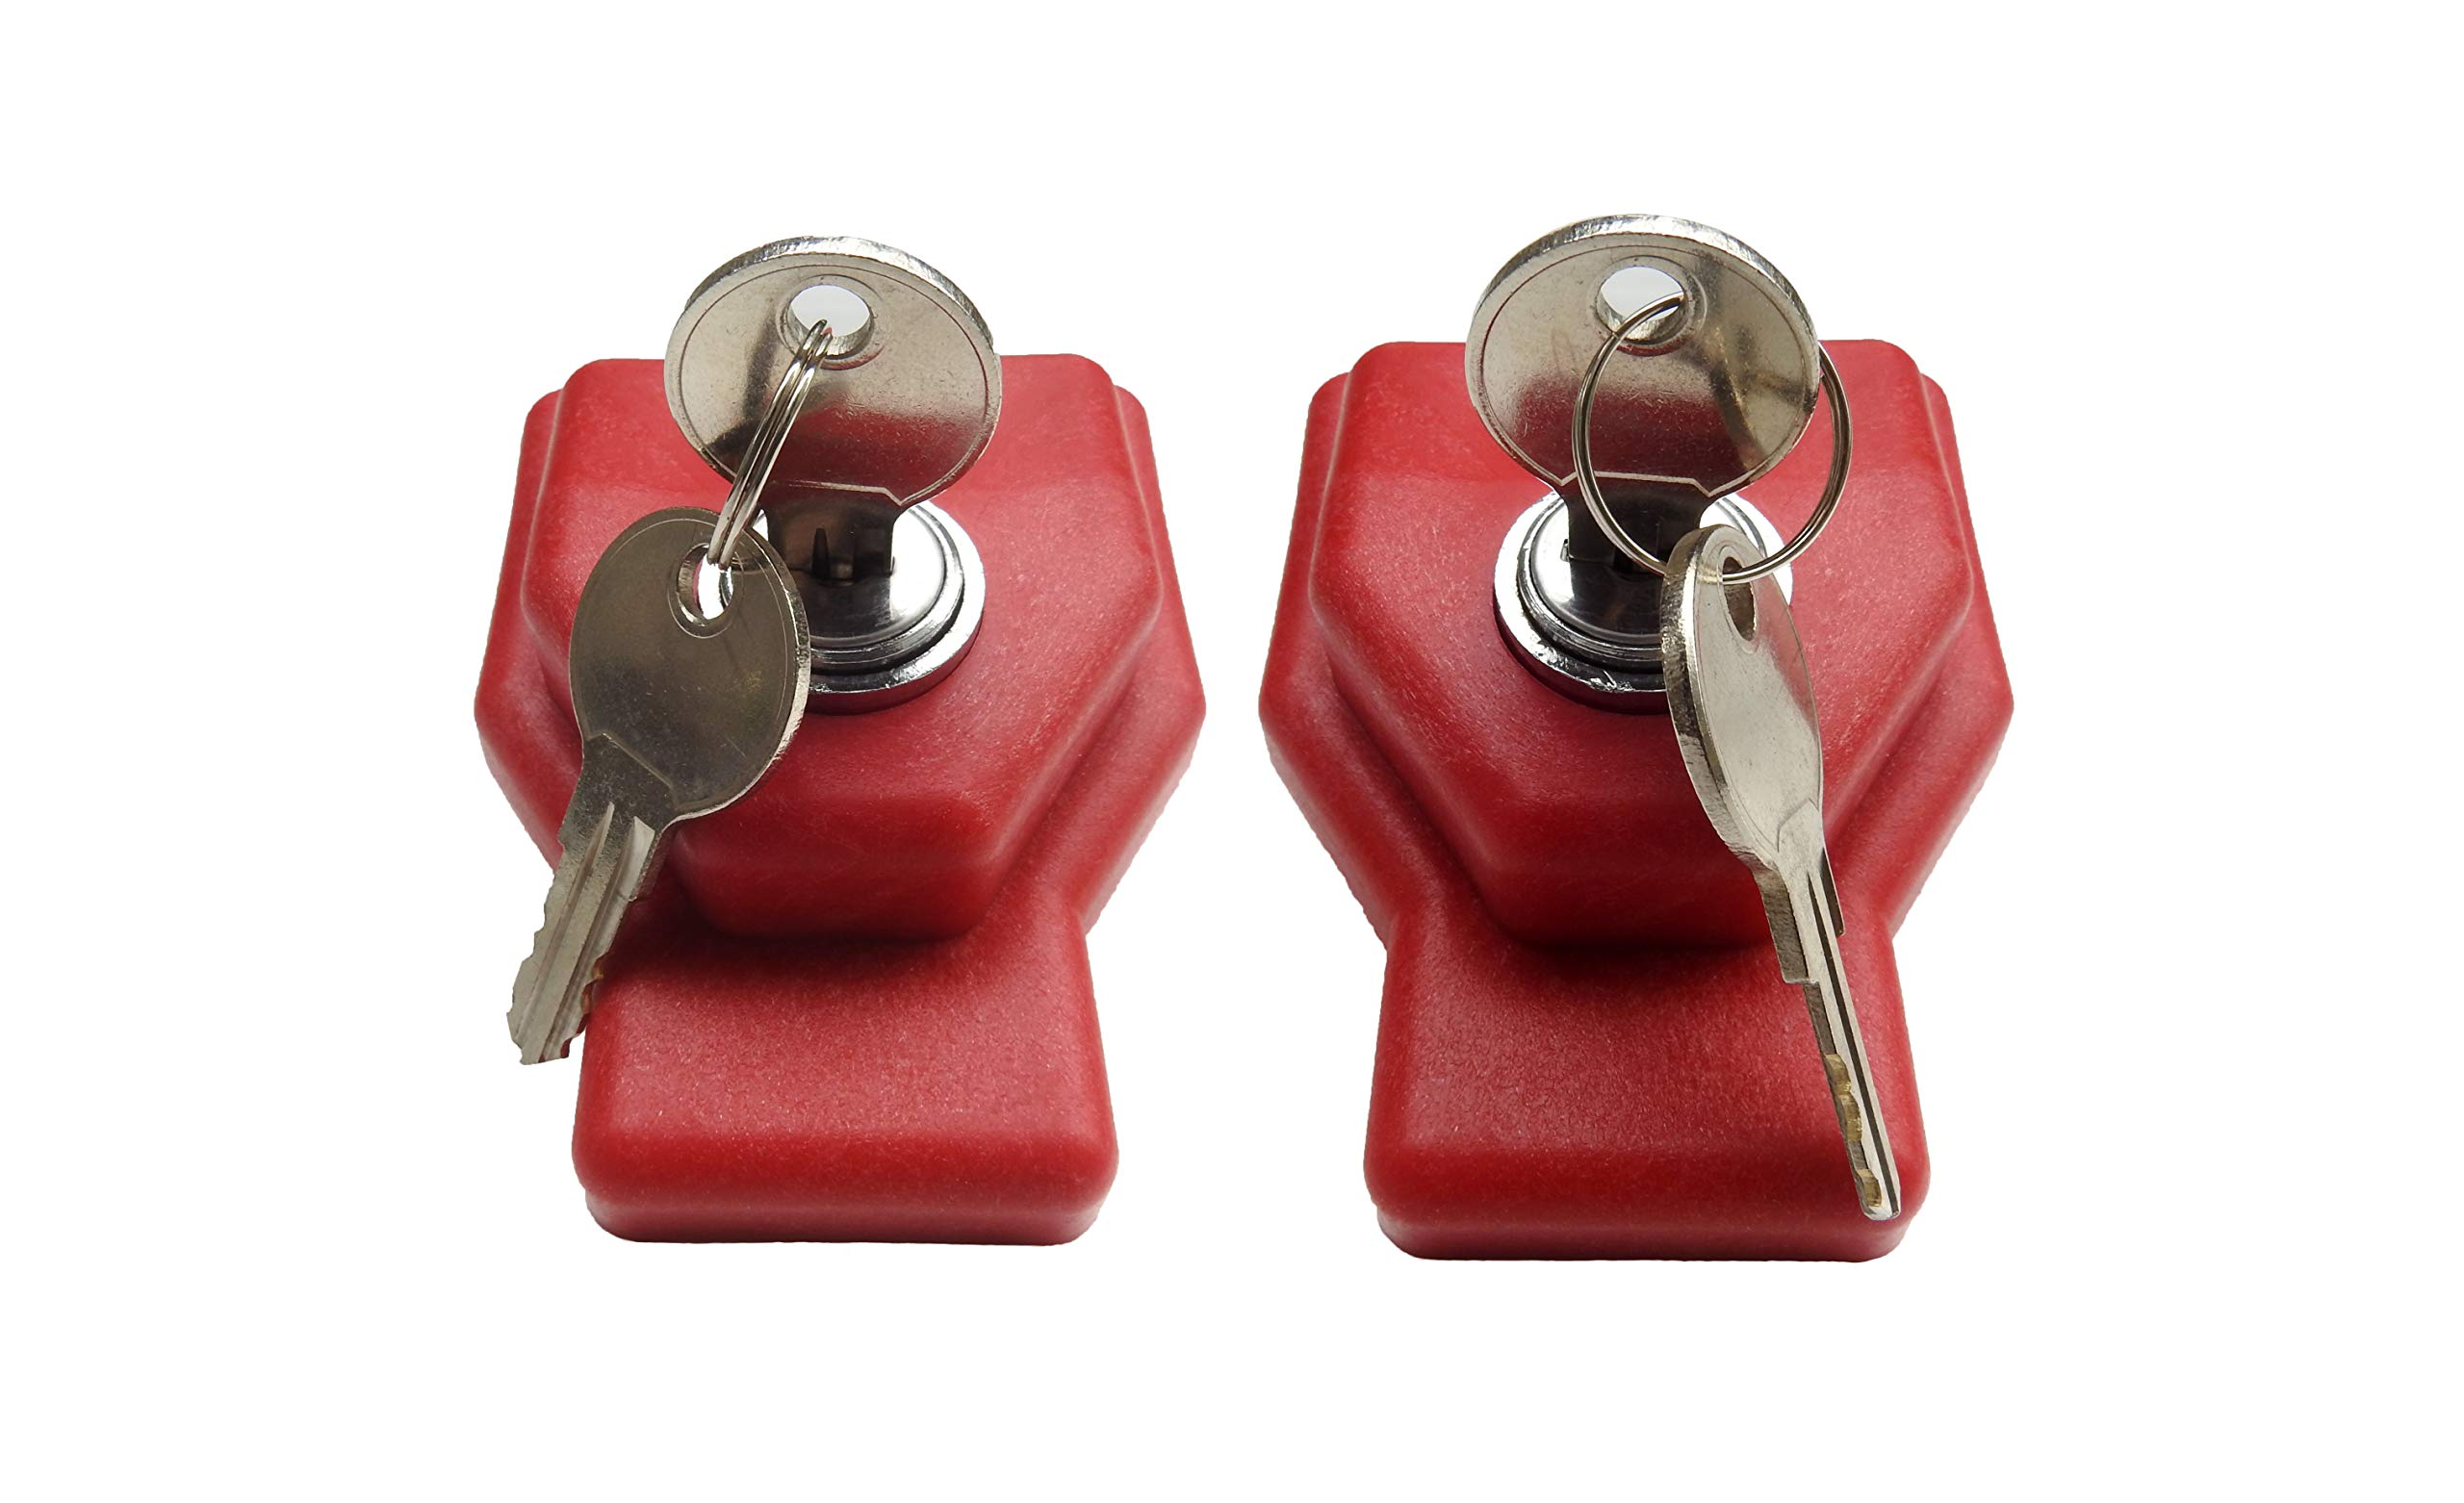 Road King Truck Parts Gladhand Safety Locks keyed Alike Pair by Road King Truck Parts